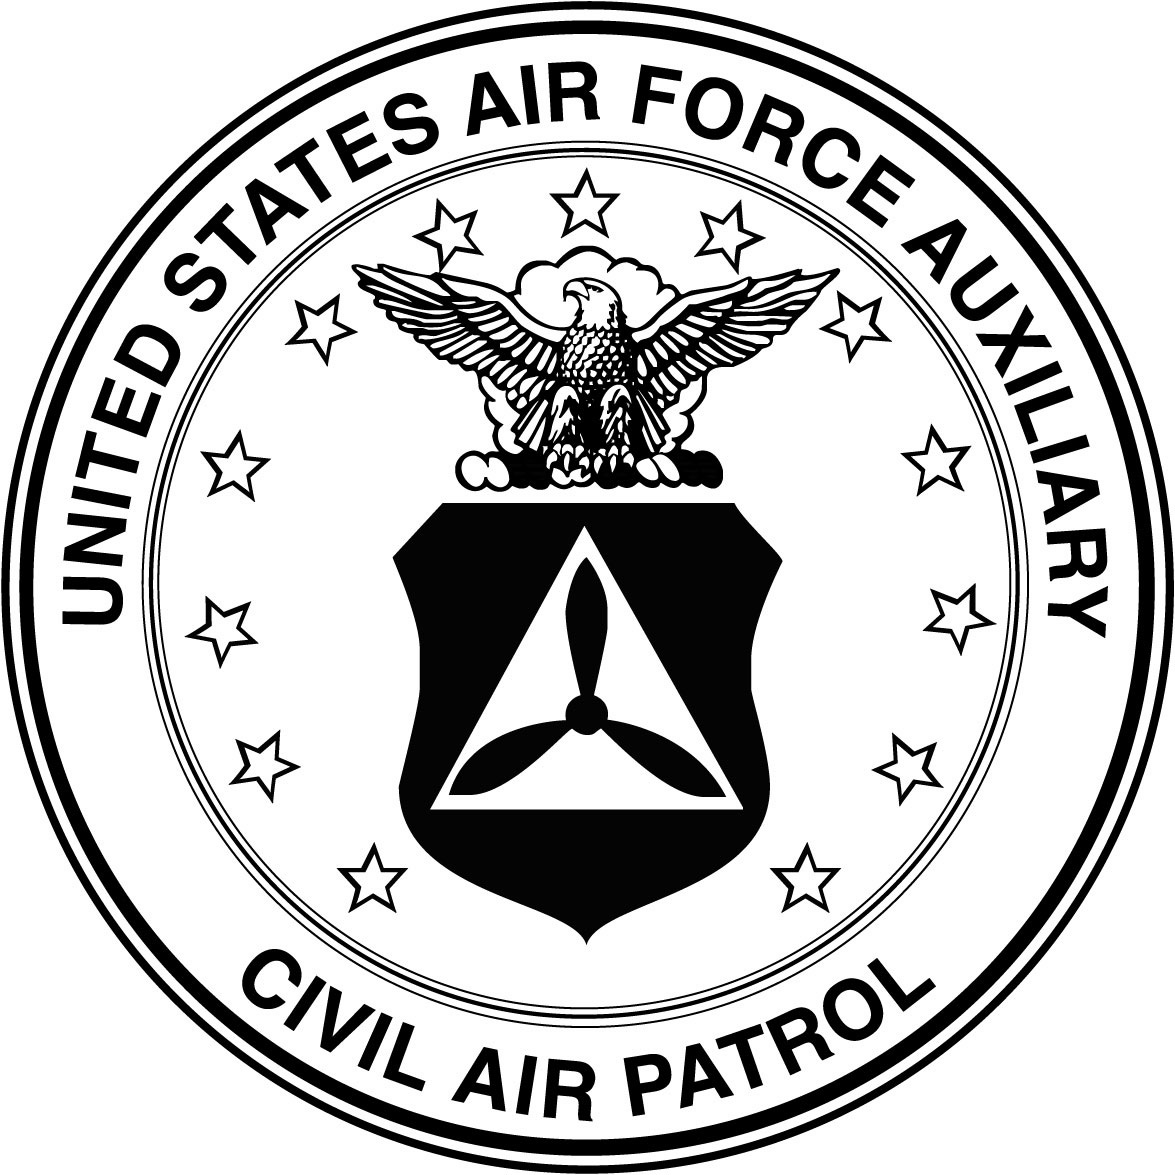 United States Air Force Auxiliary Civil Air Patrol Seal B W